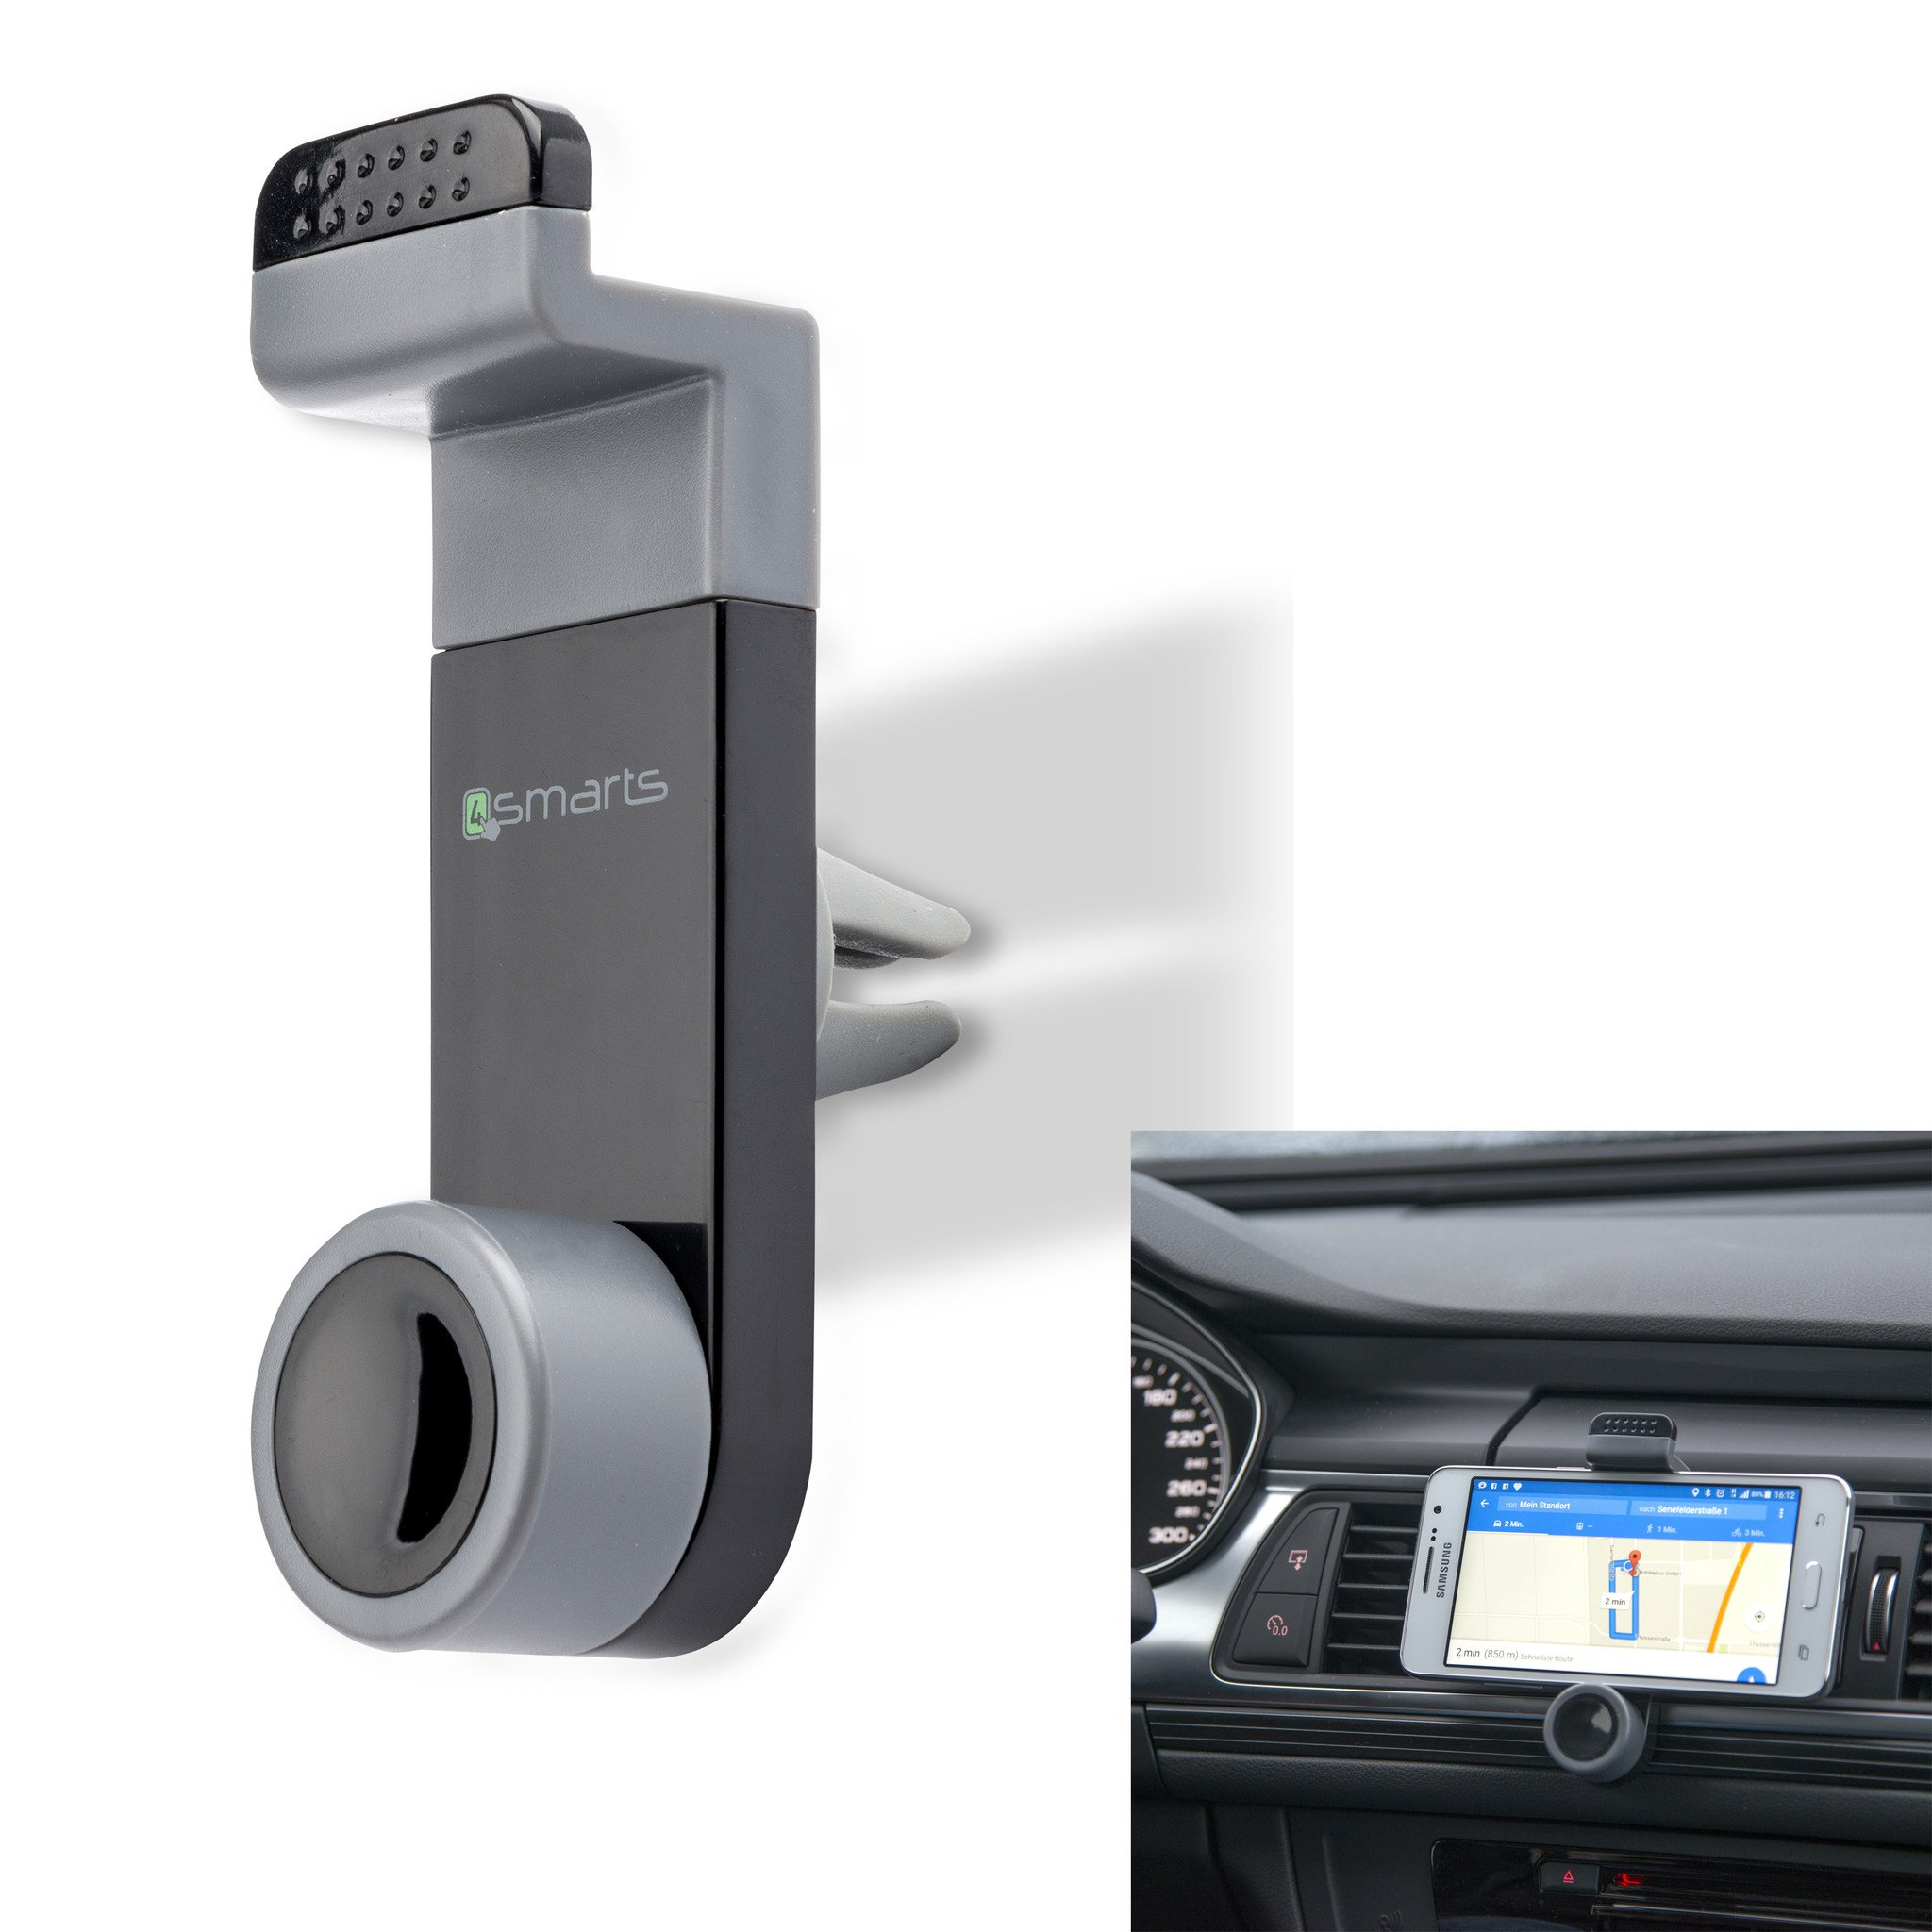 Image of   4smarts Car Air Vent Mobilholder til Bil - Grå / Sort